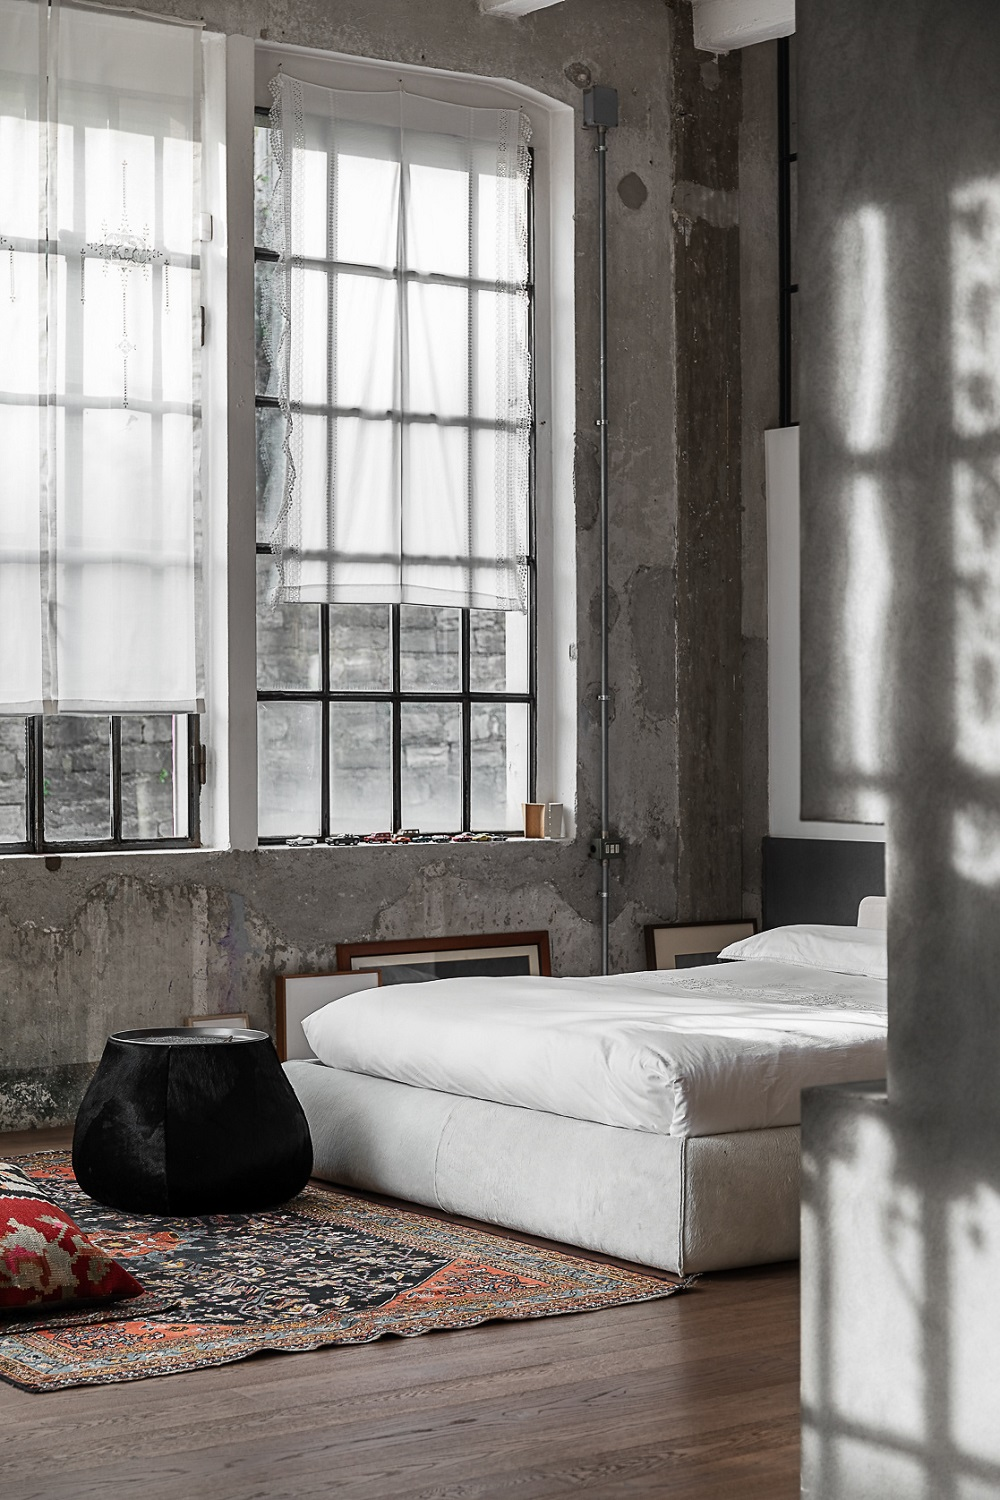 The Nordroom - An Industrial Artist Loft in Italy With Jaw Dropping Windows